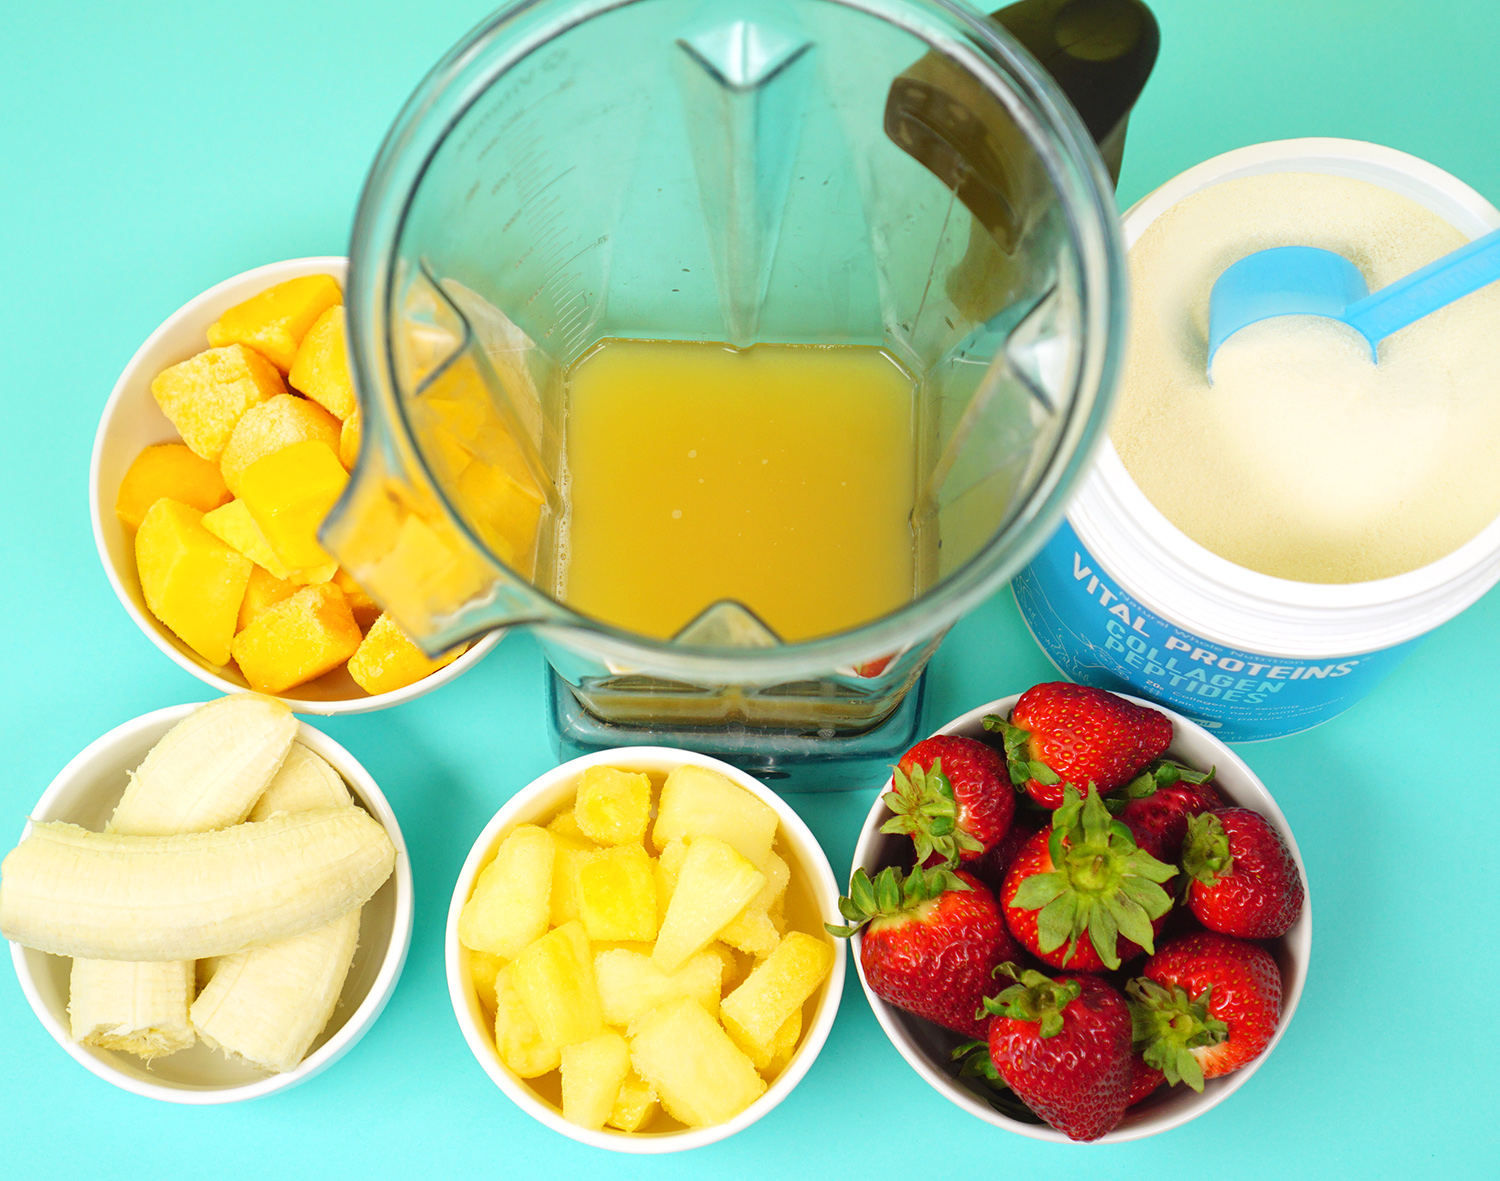 Making a Tropical Smoothie with Bowls of Fresh Fruit